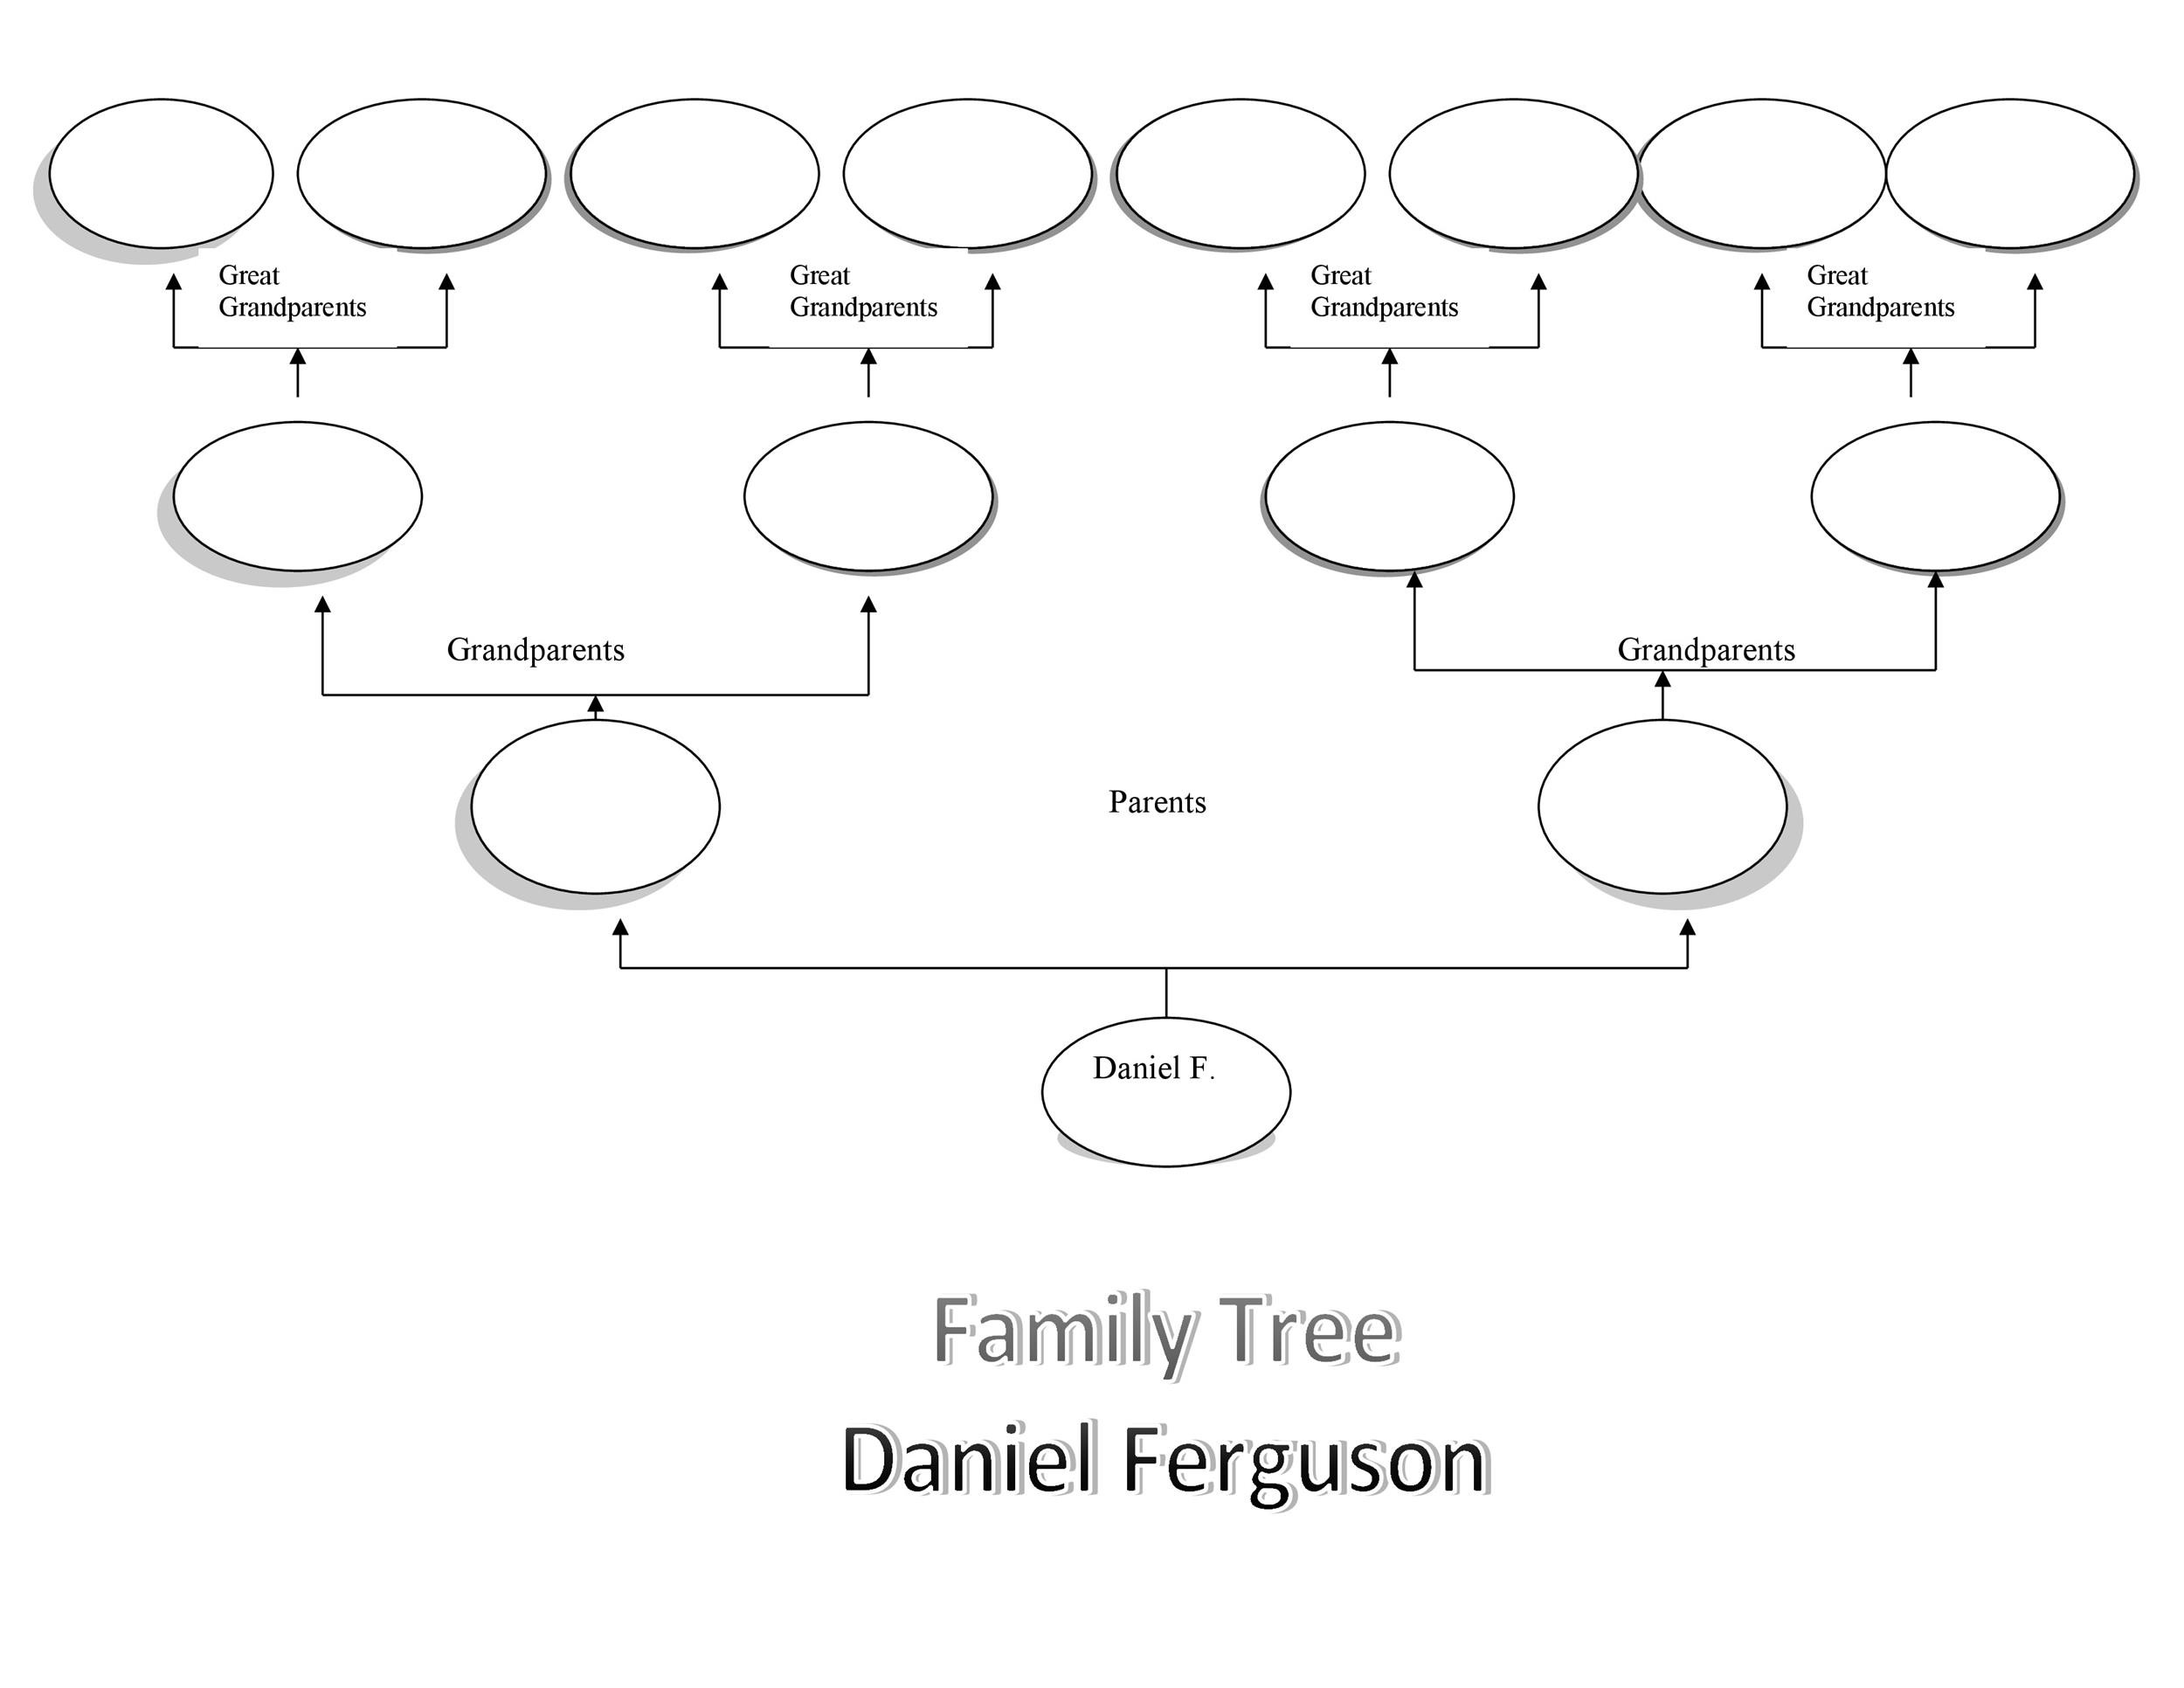 Family Tree Starting Parents